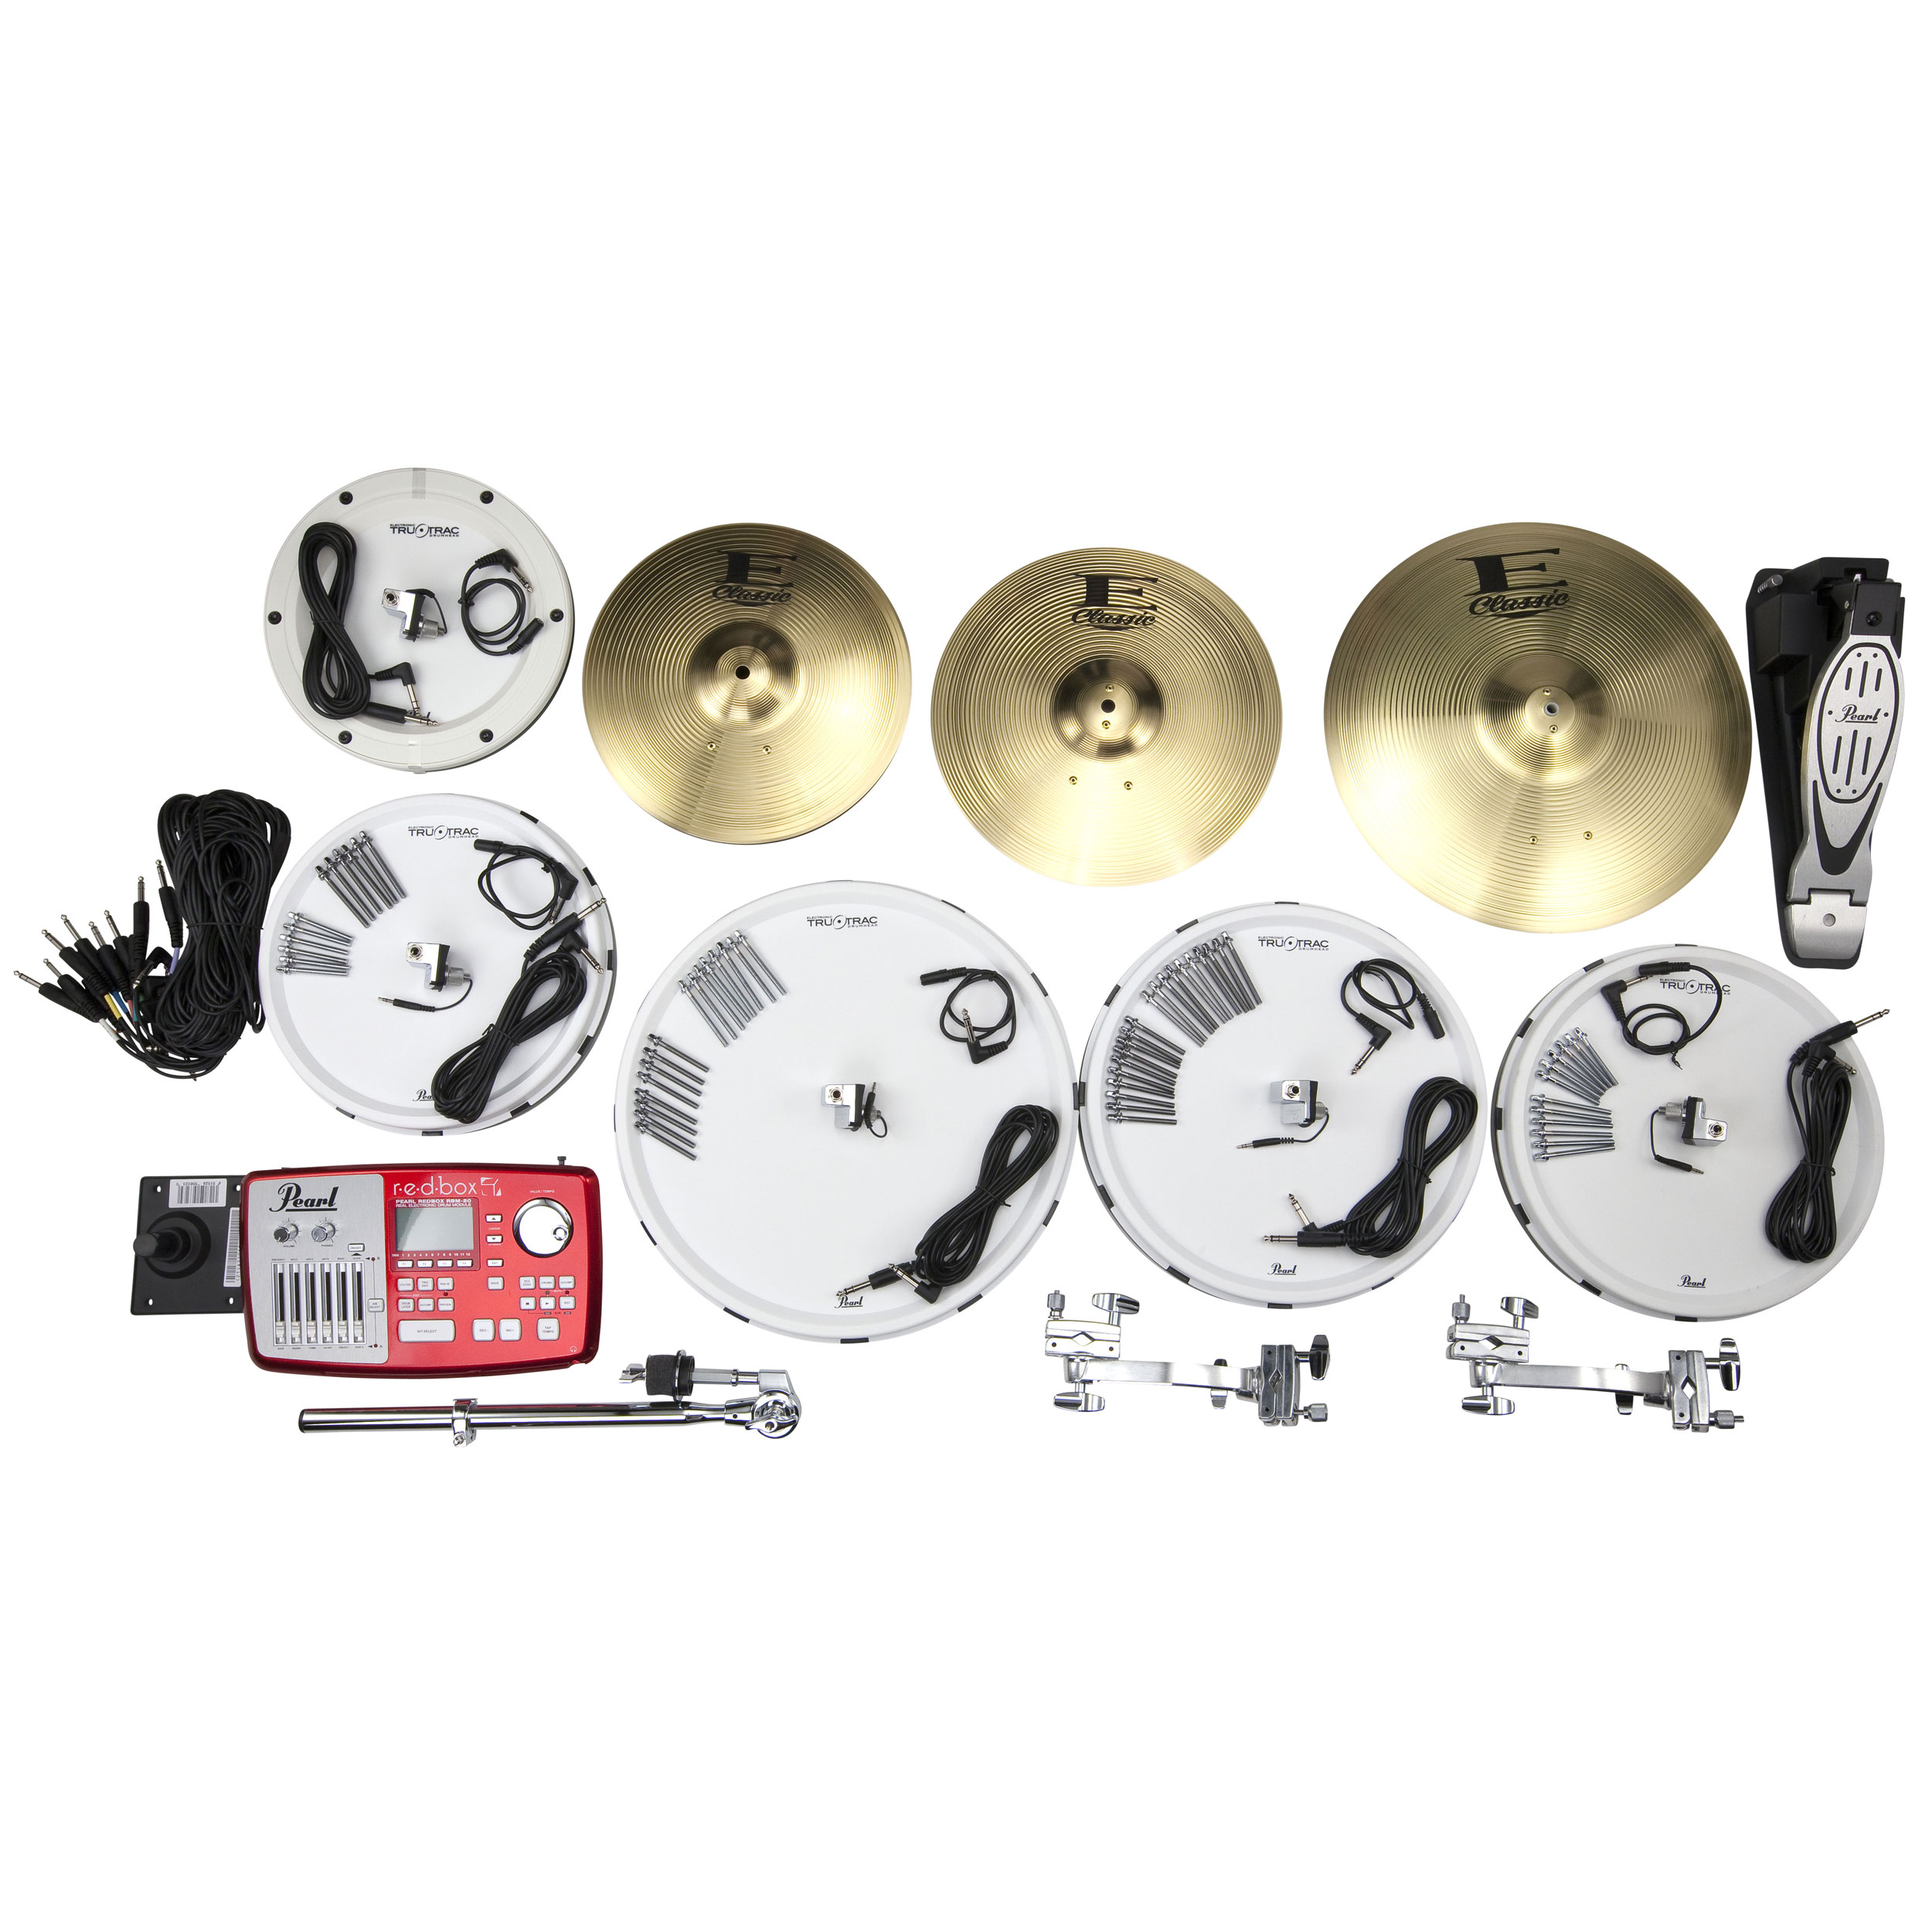 "Pearl EPAD-25 Electronic Drum Set with 12-13-14-16"" TruTrac Heads, Bass Pad, Module & Metal Cymbals"